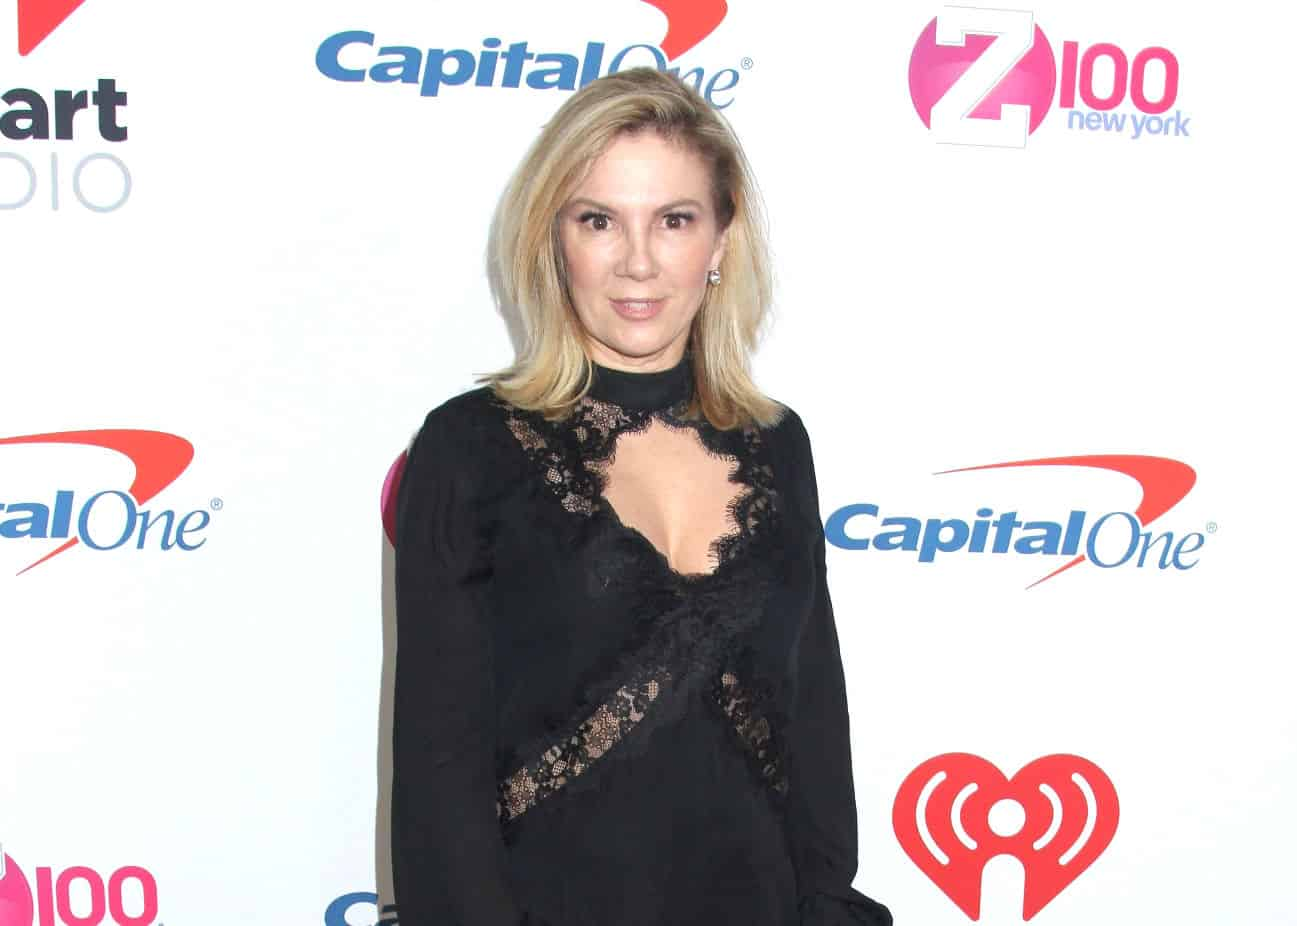 RHONY Star Ramona Singer Reacts to Firing Rumor and Teases Real Housewives All Stars Premiere Date, Plus Live Viewing Thread